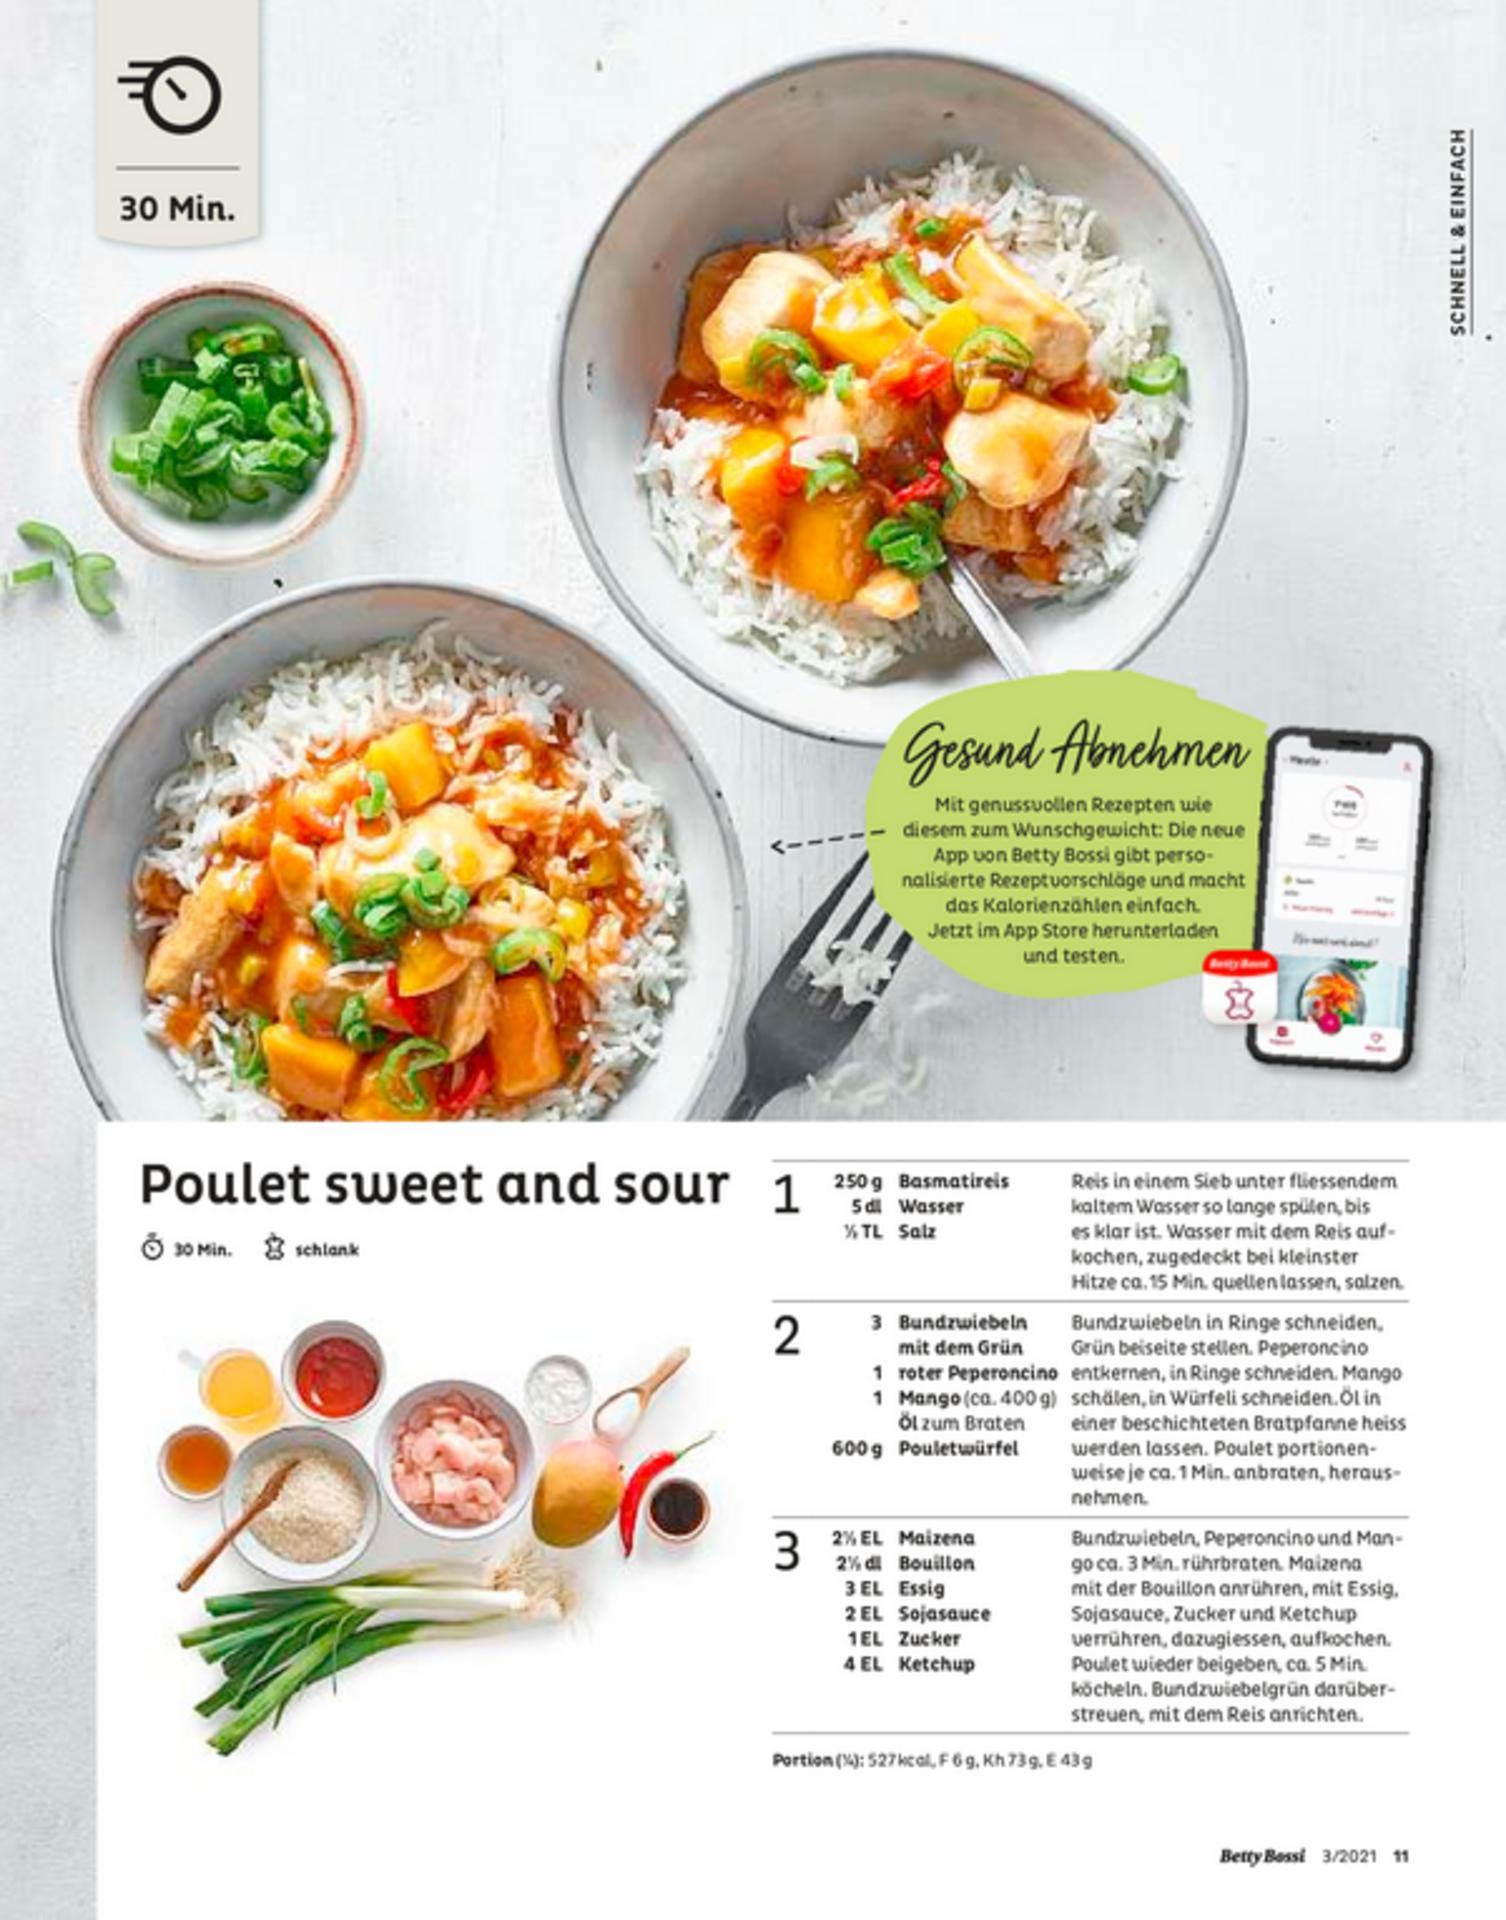 Poulet sweet and sour